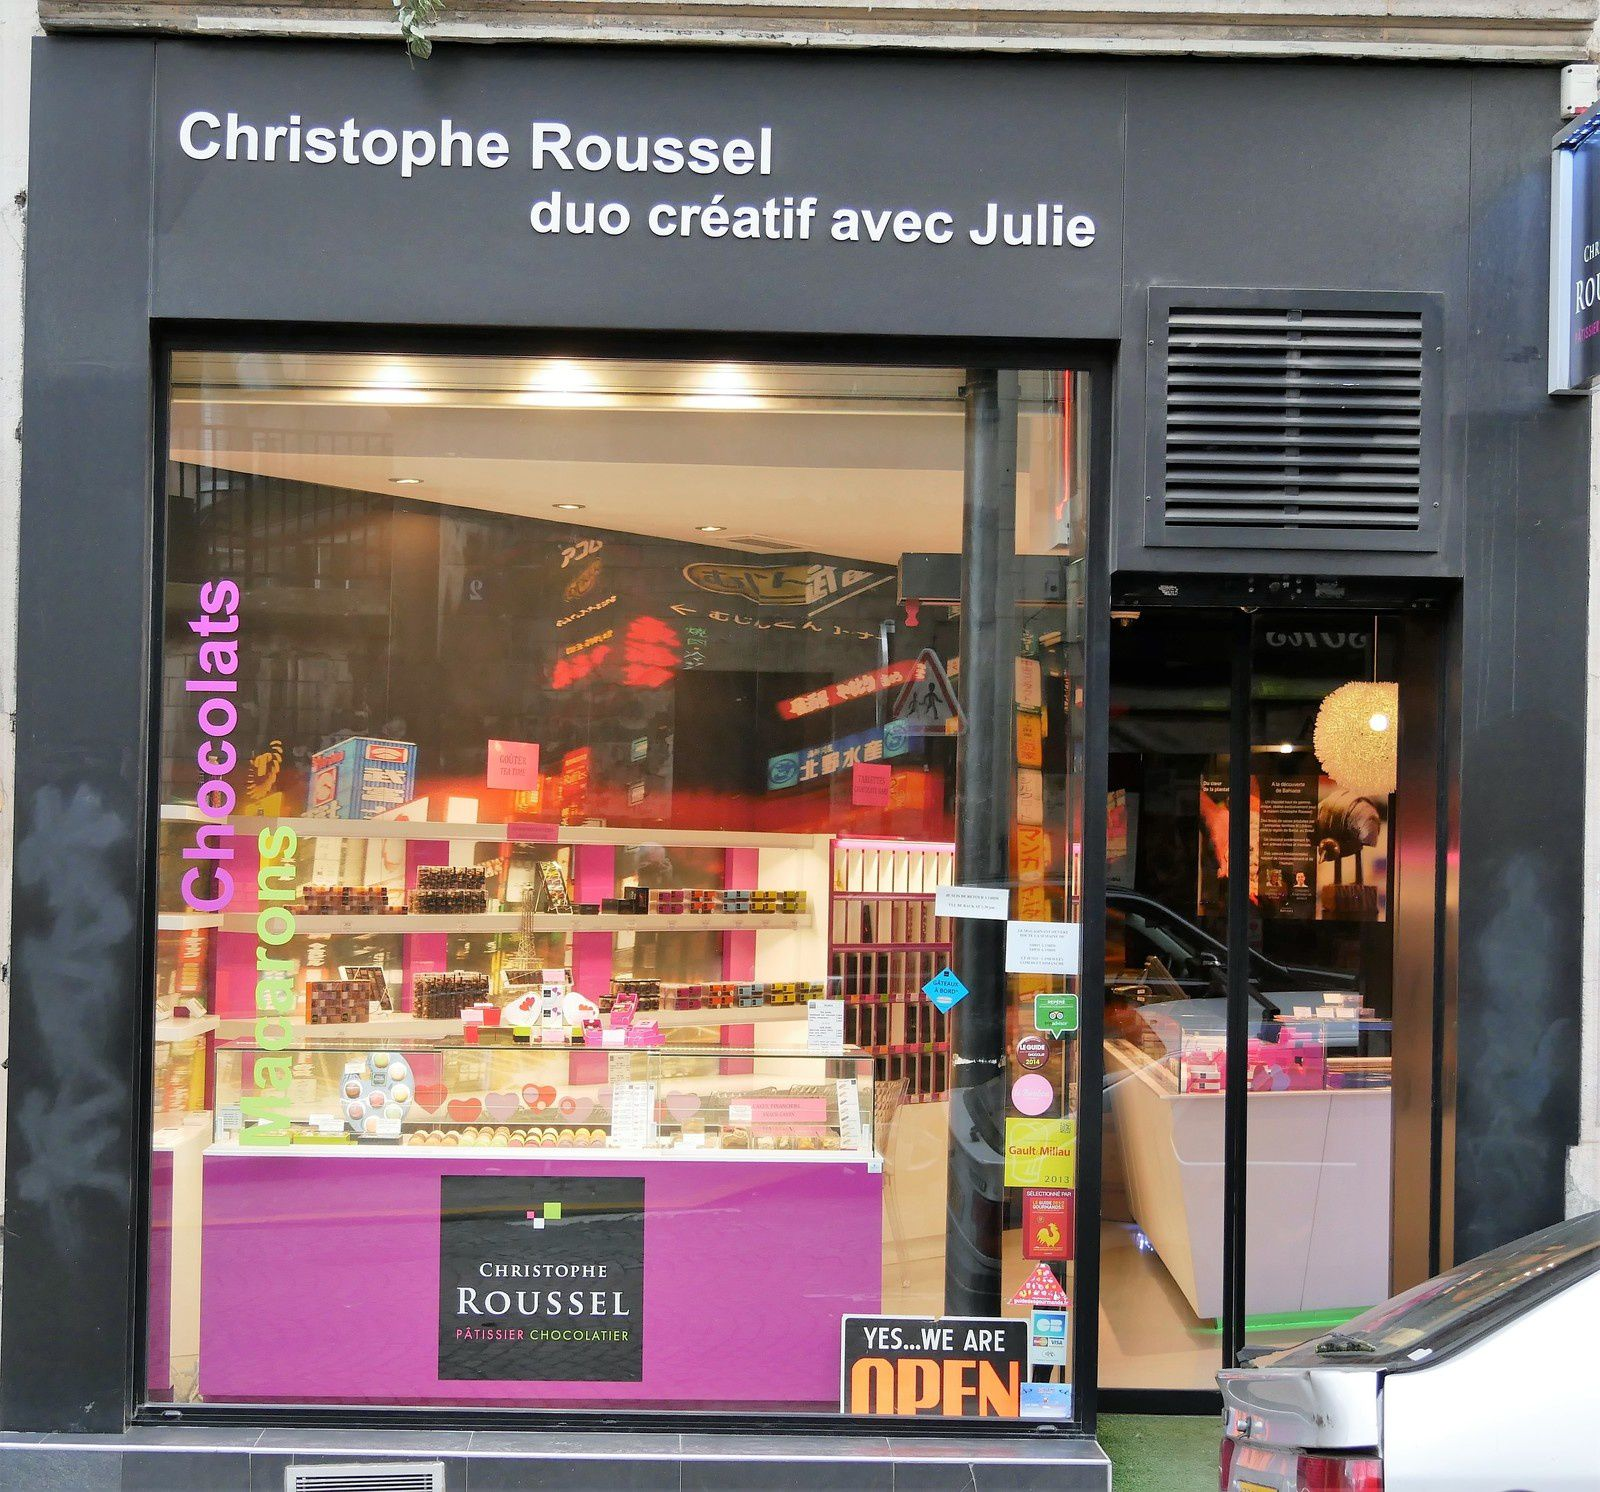 Le grand chocolatier du quartier : Christophe Roussel.